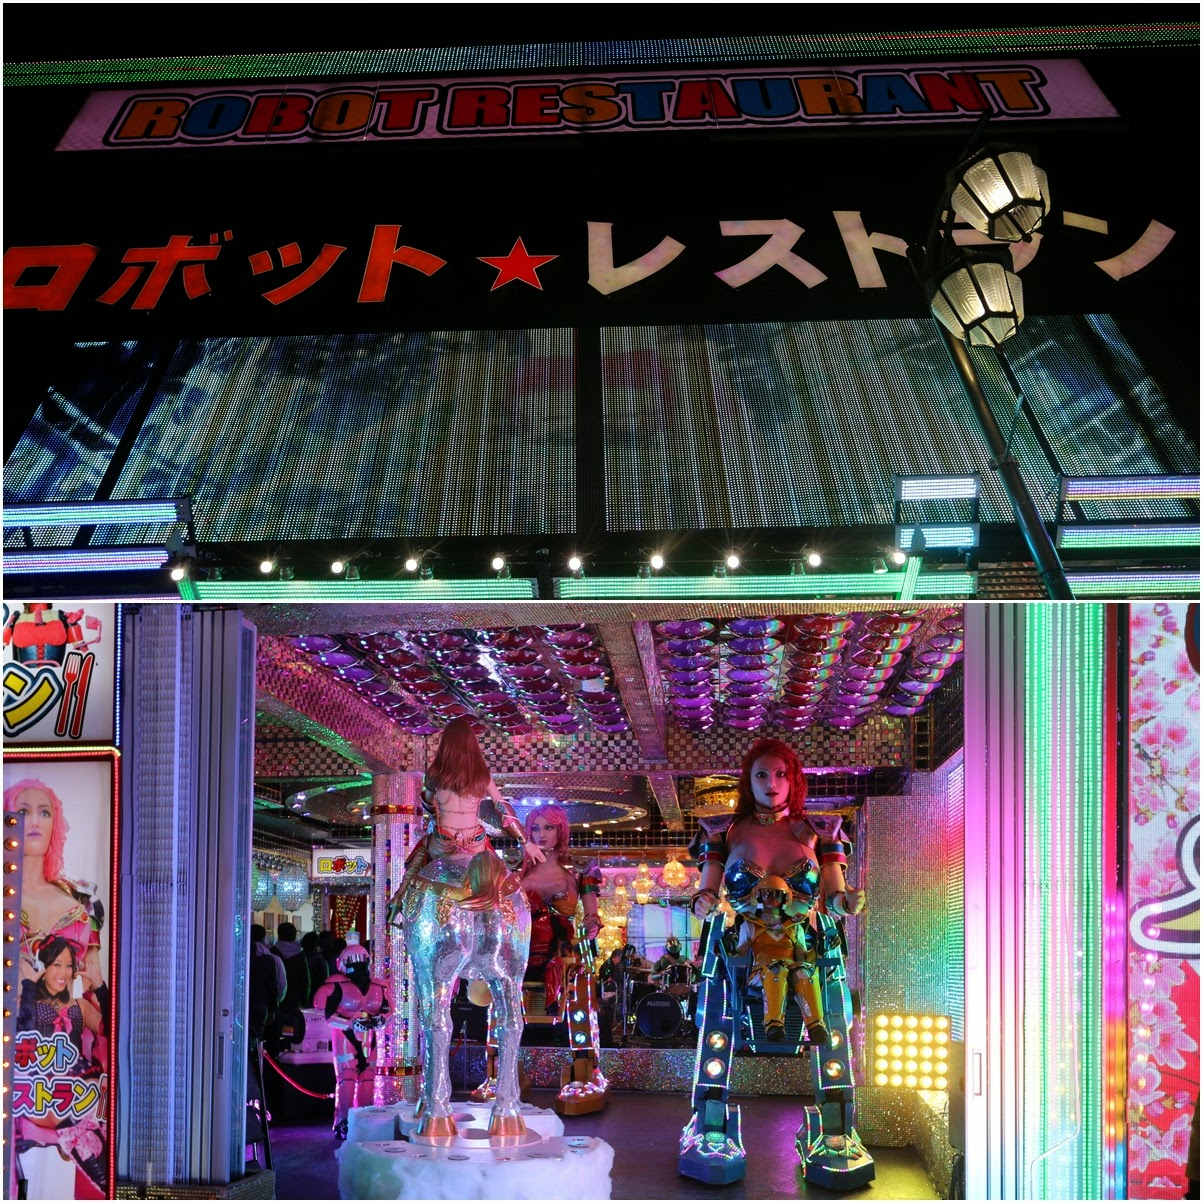 Popular Robot Restaurant with crowded customers at Shinjuku in Tokyo, Japan